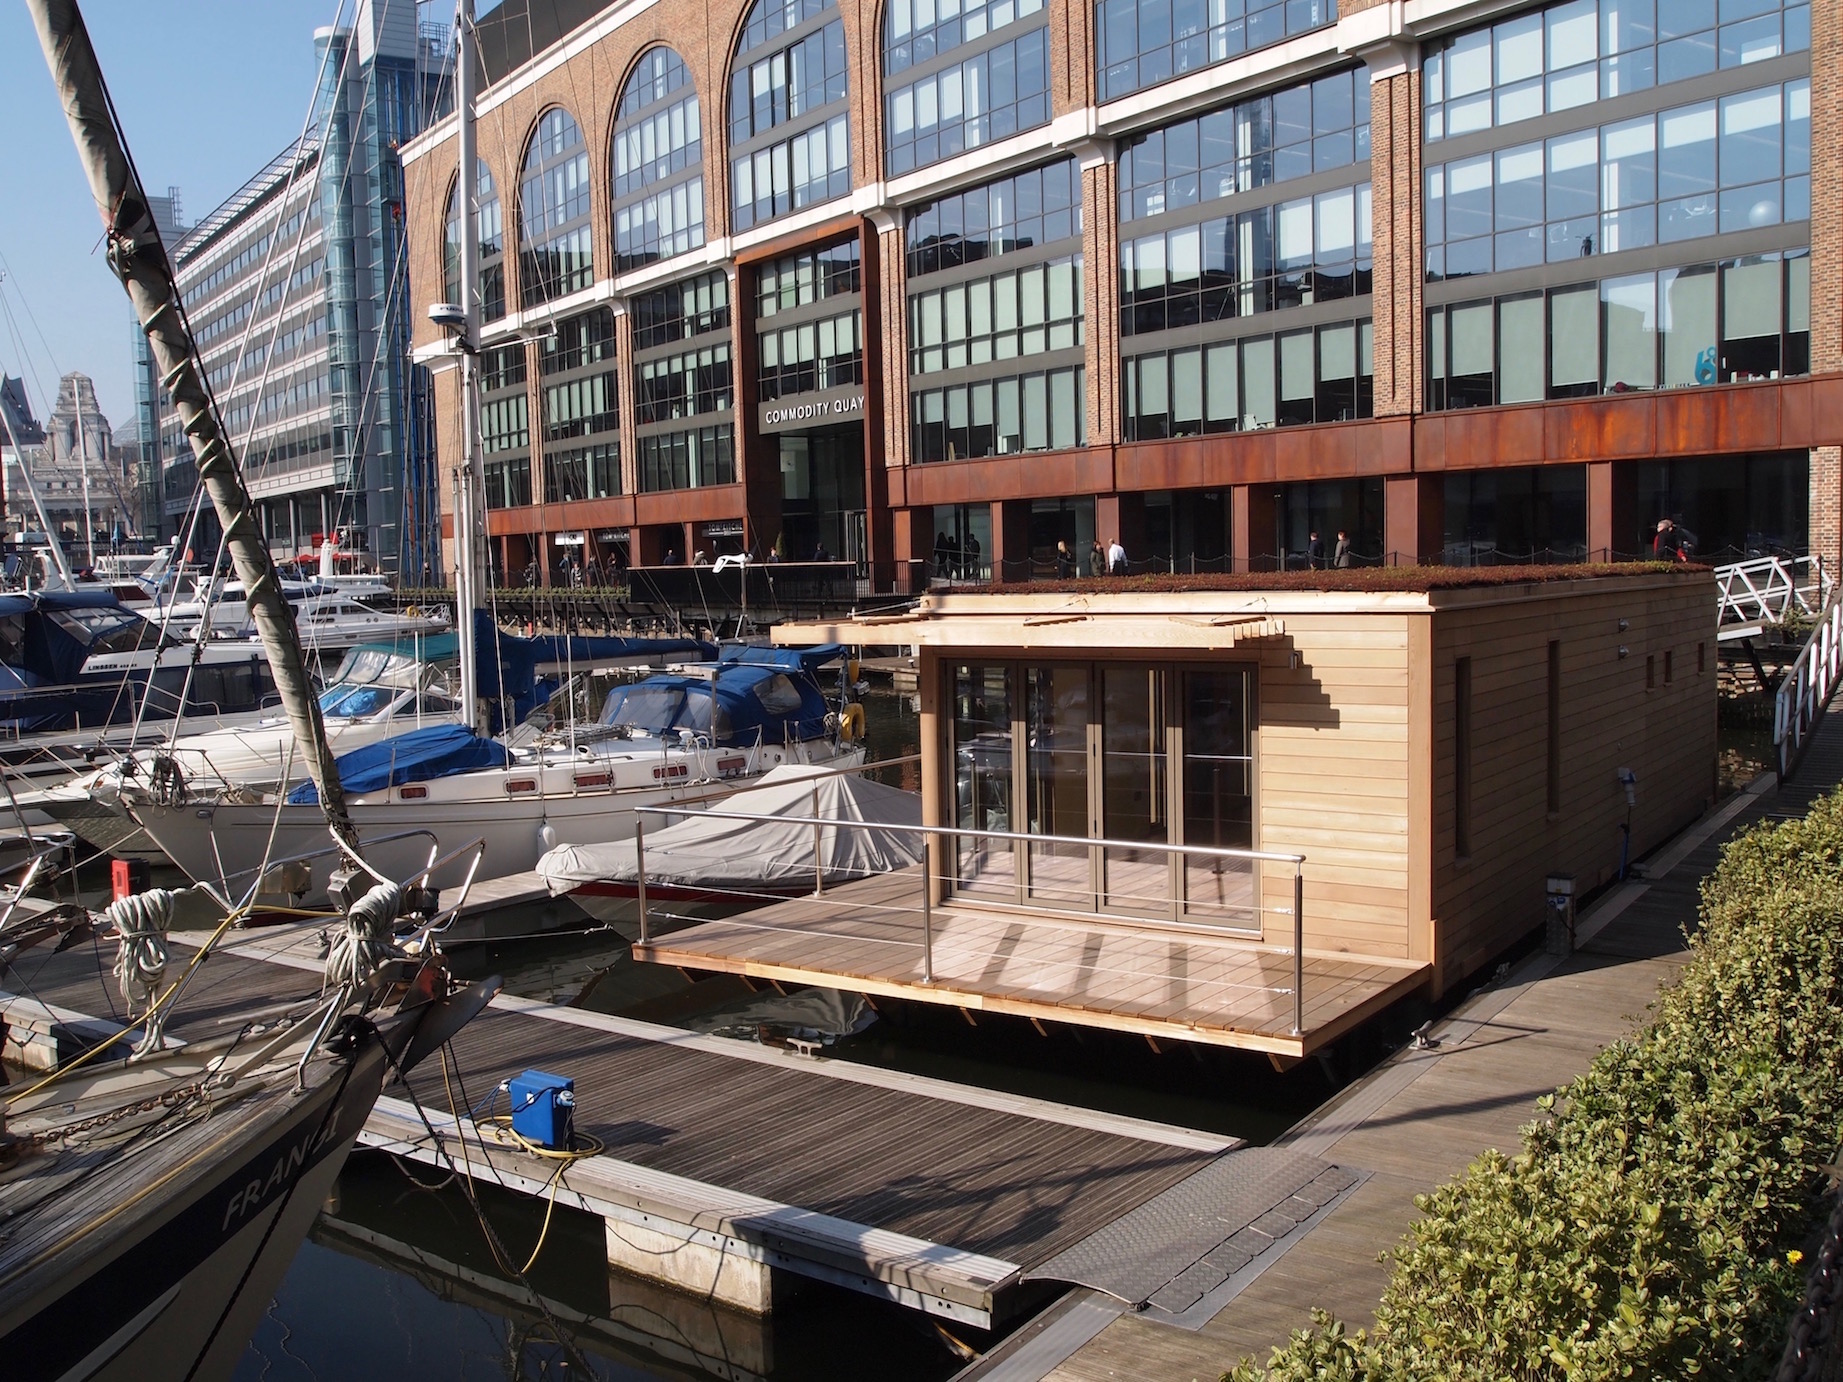 Floating home at Commodiry Quay, St Katharine Docks